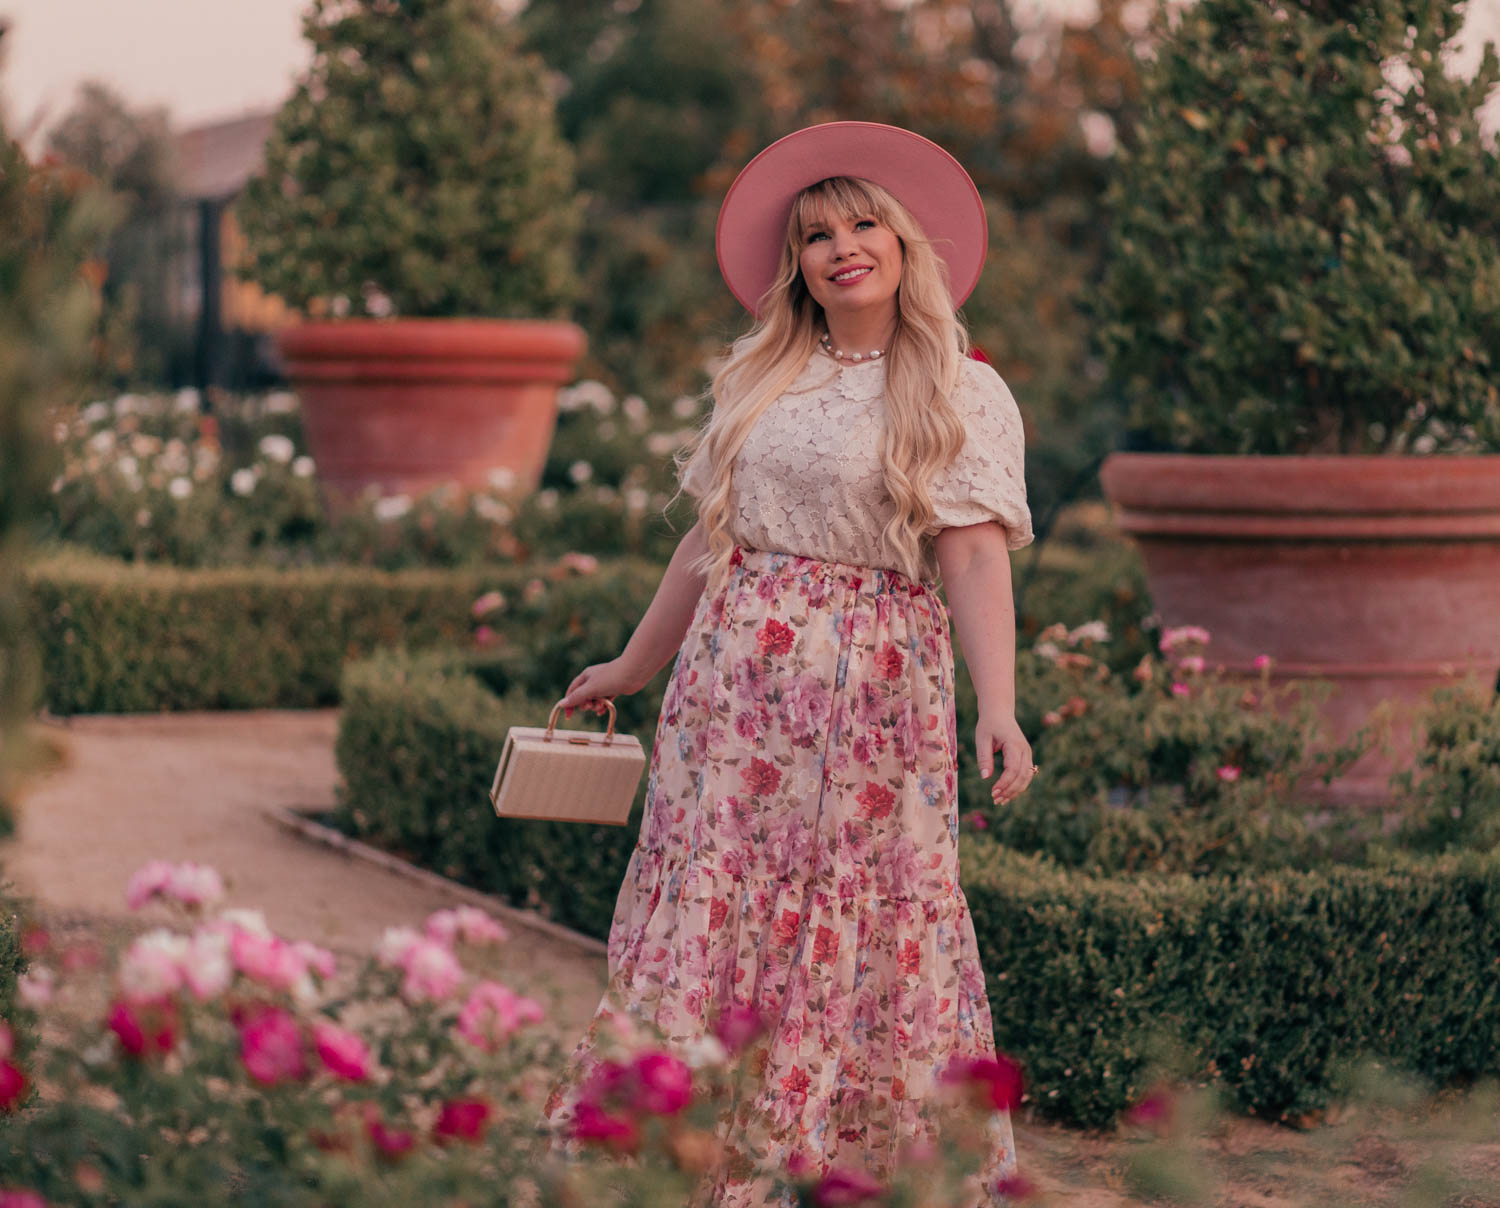 Feminine Fashion Blogger Elizabeth Hugen of Lizzie in Lace shares her top 5 Feminine Summer Essentials for the Girly Girl including a Lack of Color Rose Rancher Hat